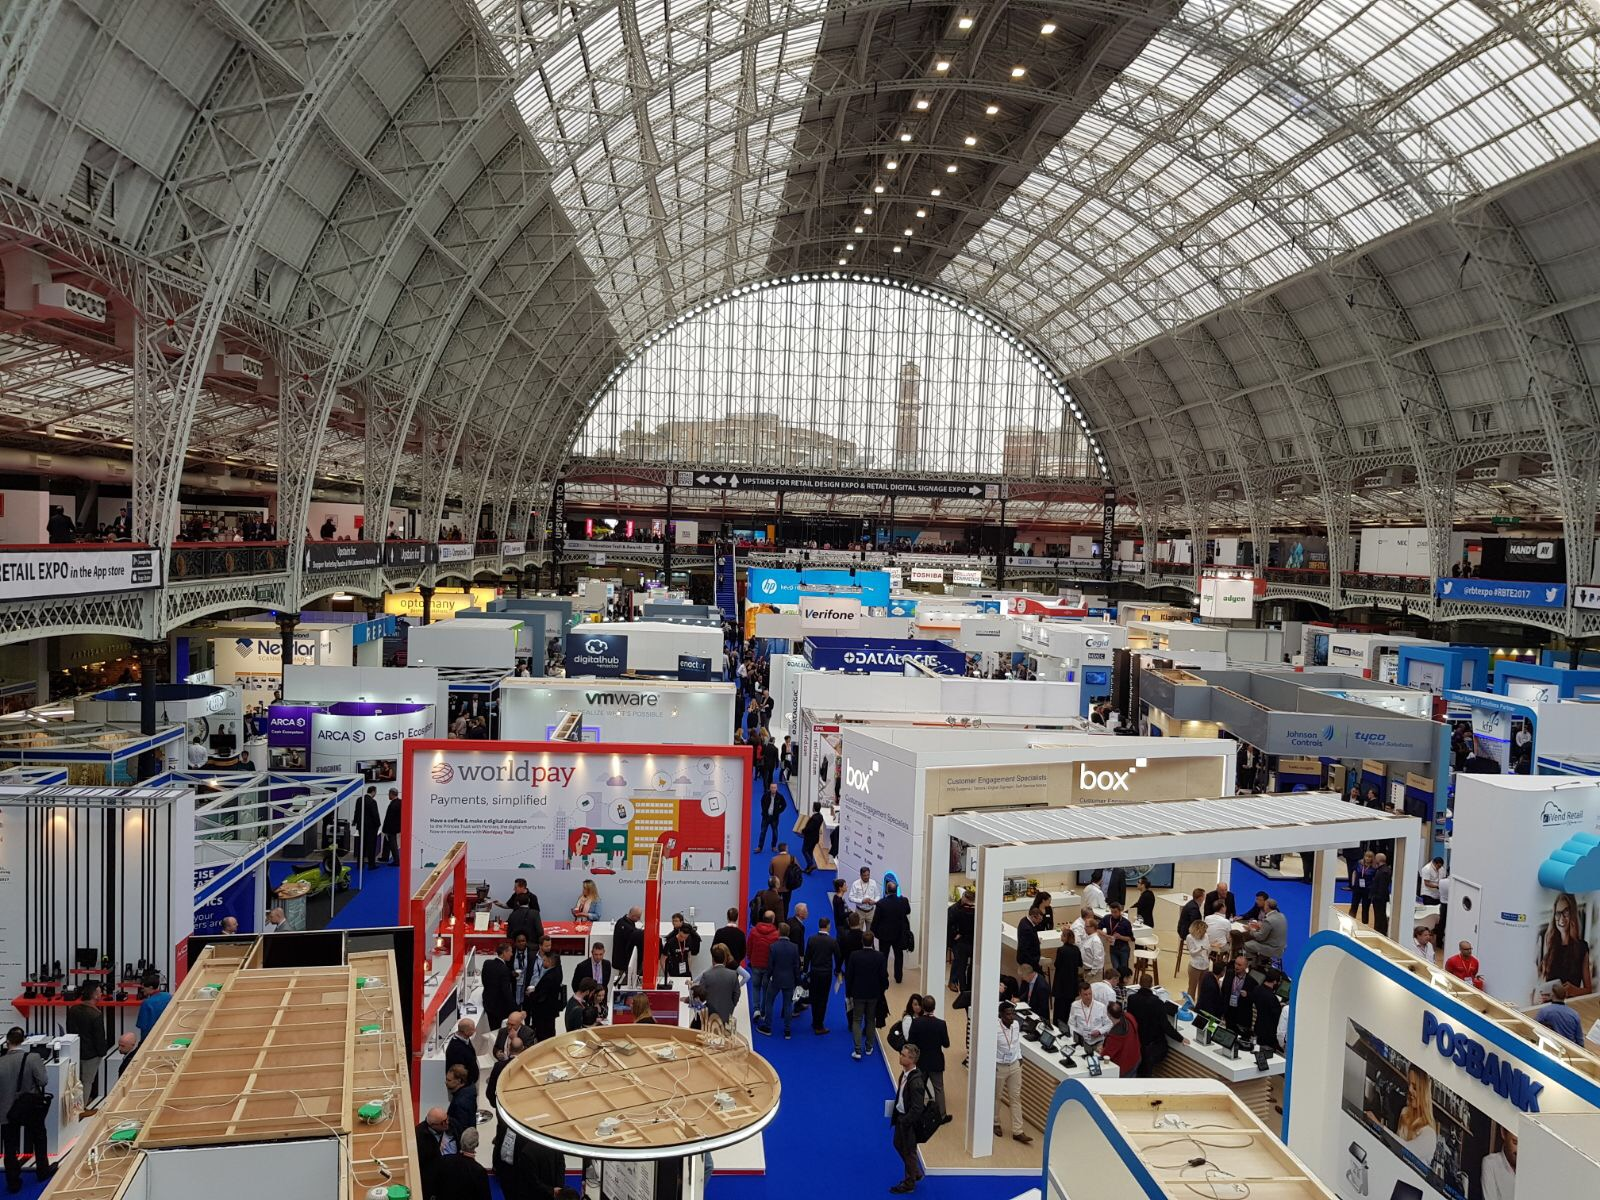 Synel Uk Participating At The Retail Exhibition